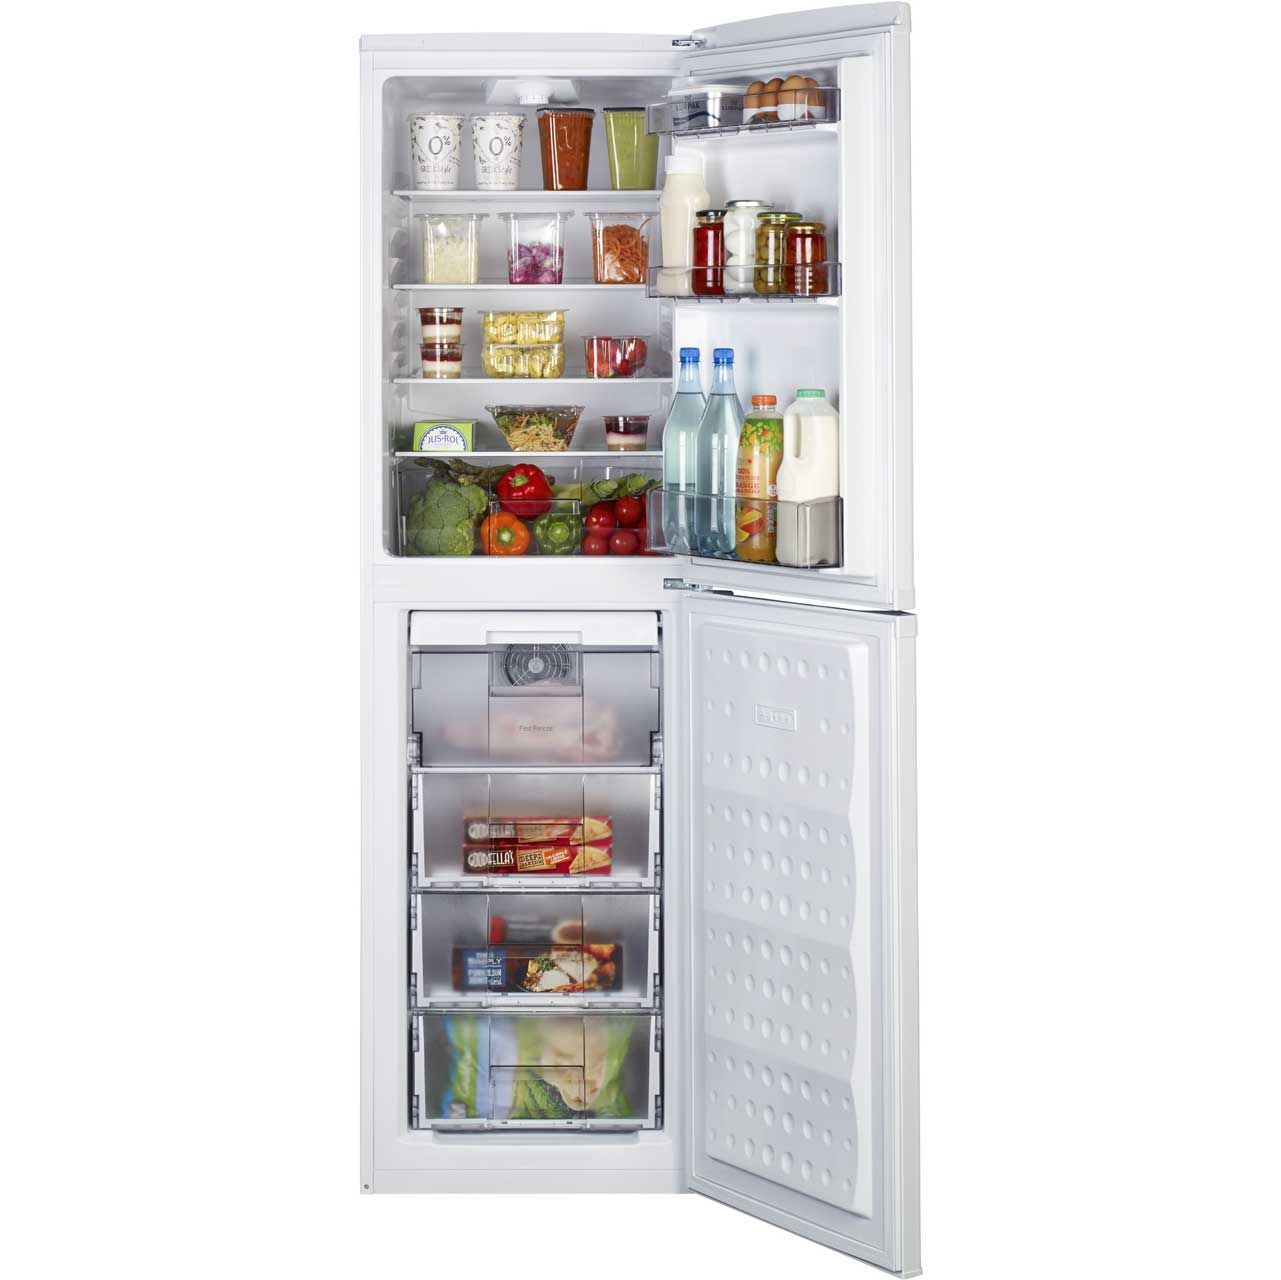 Beko RCF582W 50/50 Frost Free Fridge Freezer - White